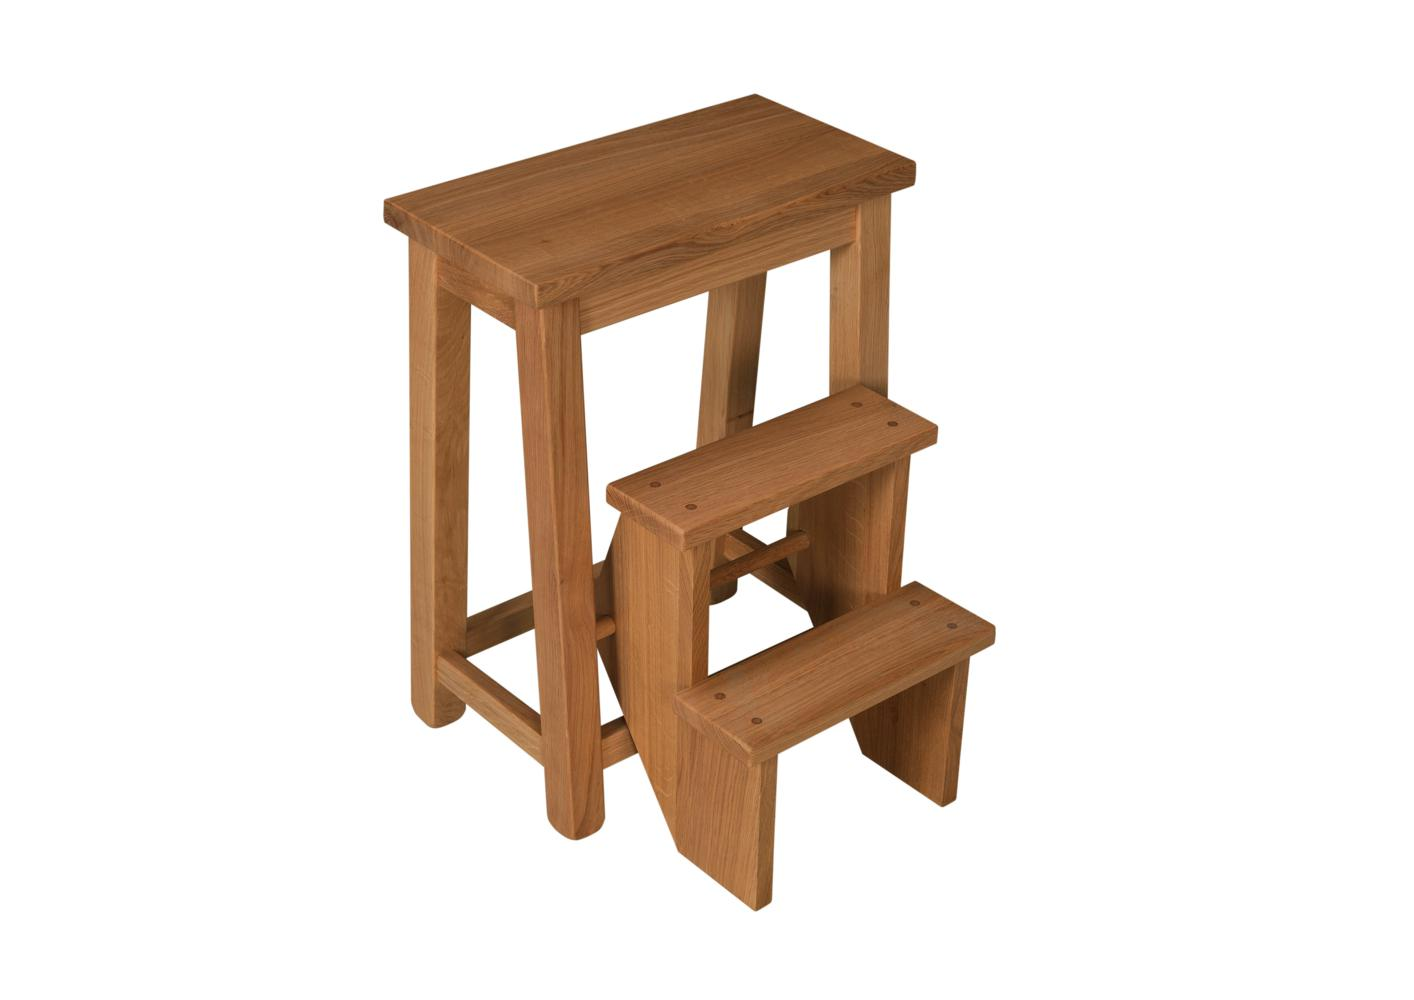 tabouret de bar en bois ikea maison design. Black Bedroom Furniture Sets. Home Design Ideas